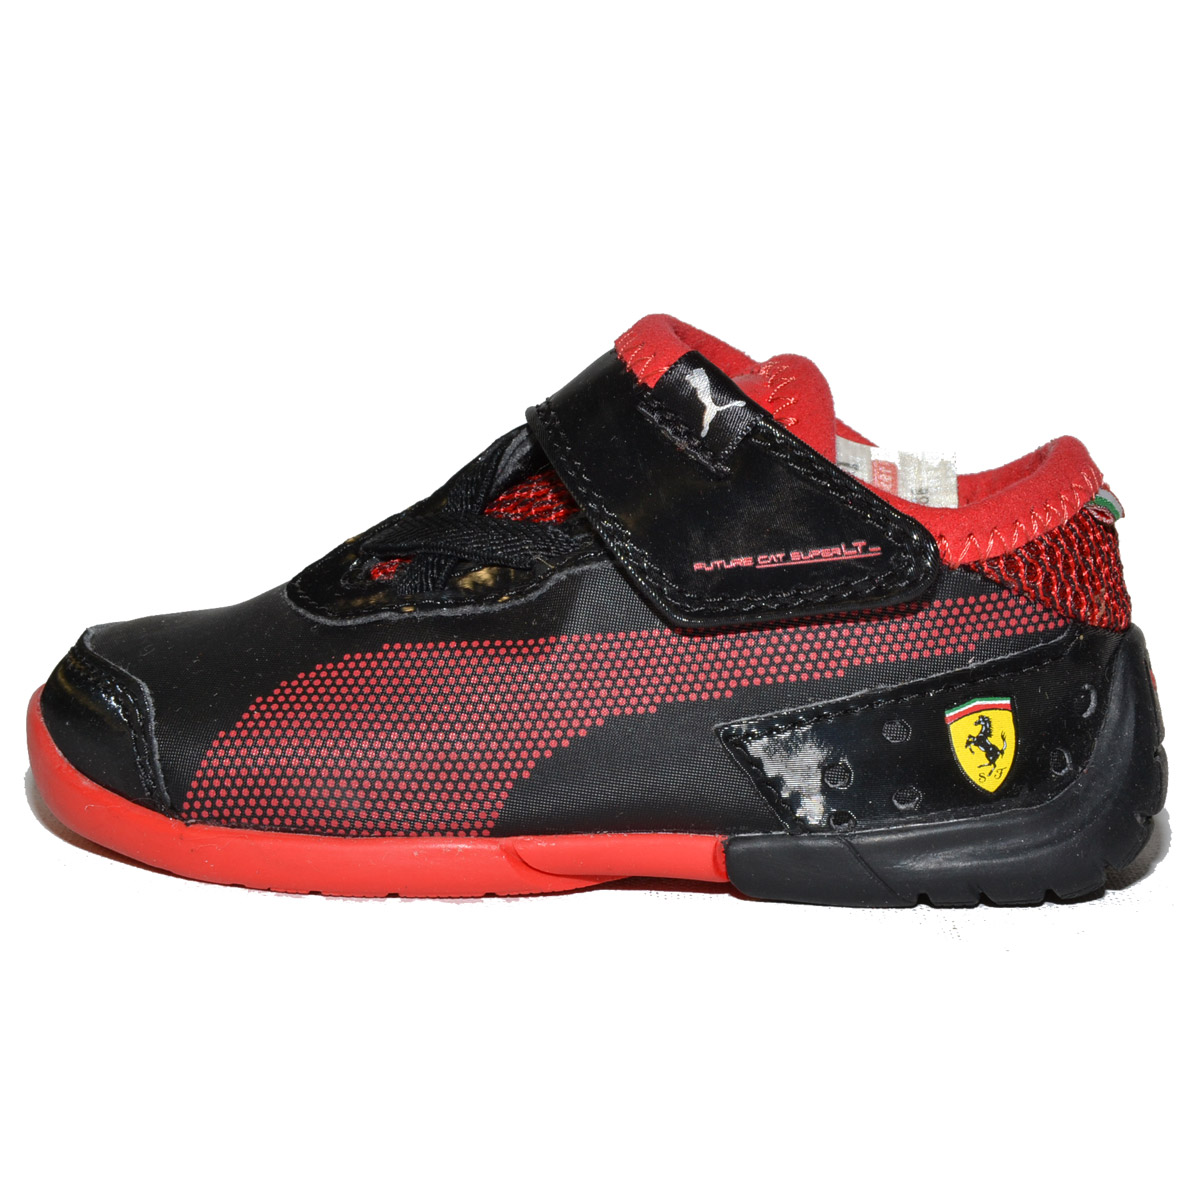 shoes saleamazing sd trainers sneaker shopping amazing kids selection p childrens children jr s ferrari trainerspuma boys cat online iii puma sale drift